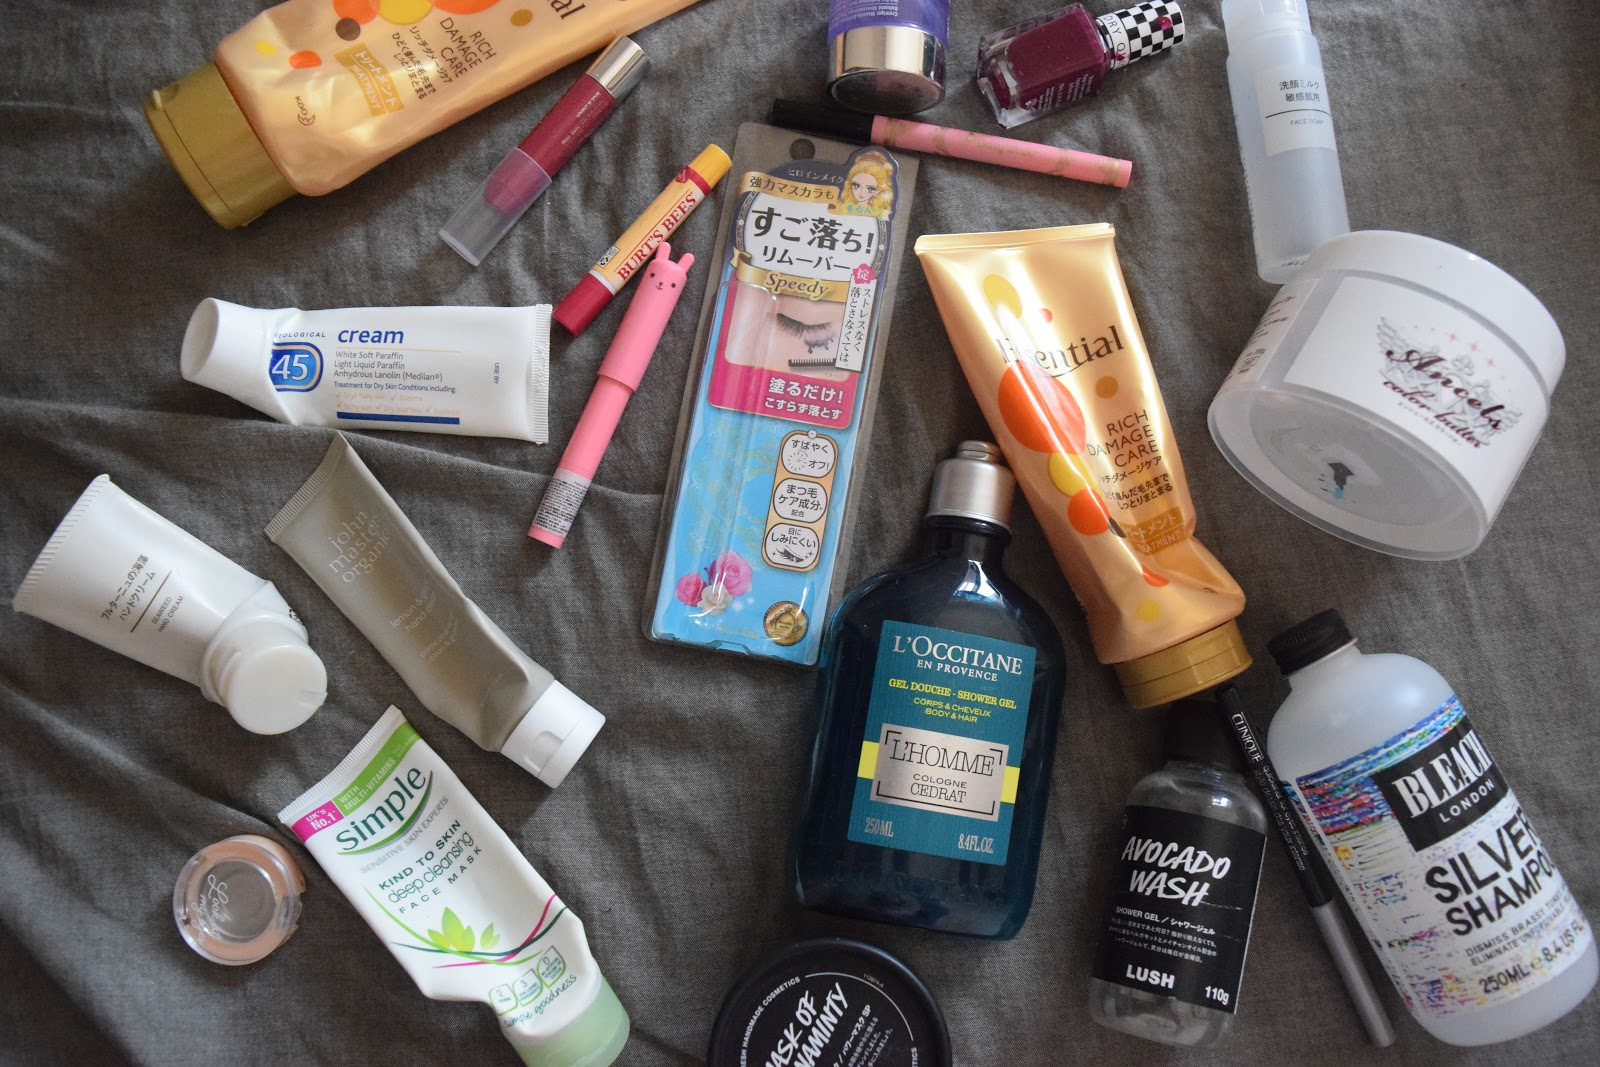 Flatlay of empty beauty products including skincare, makeup and hair care